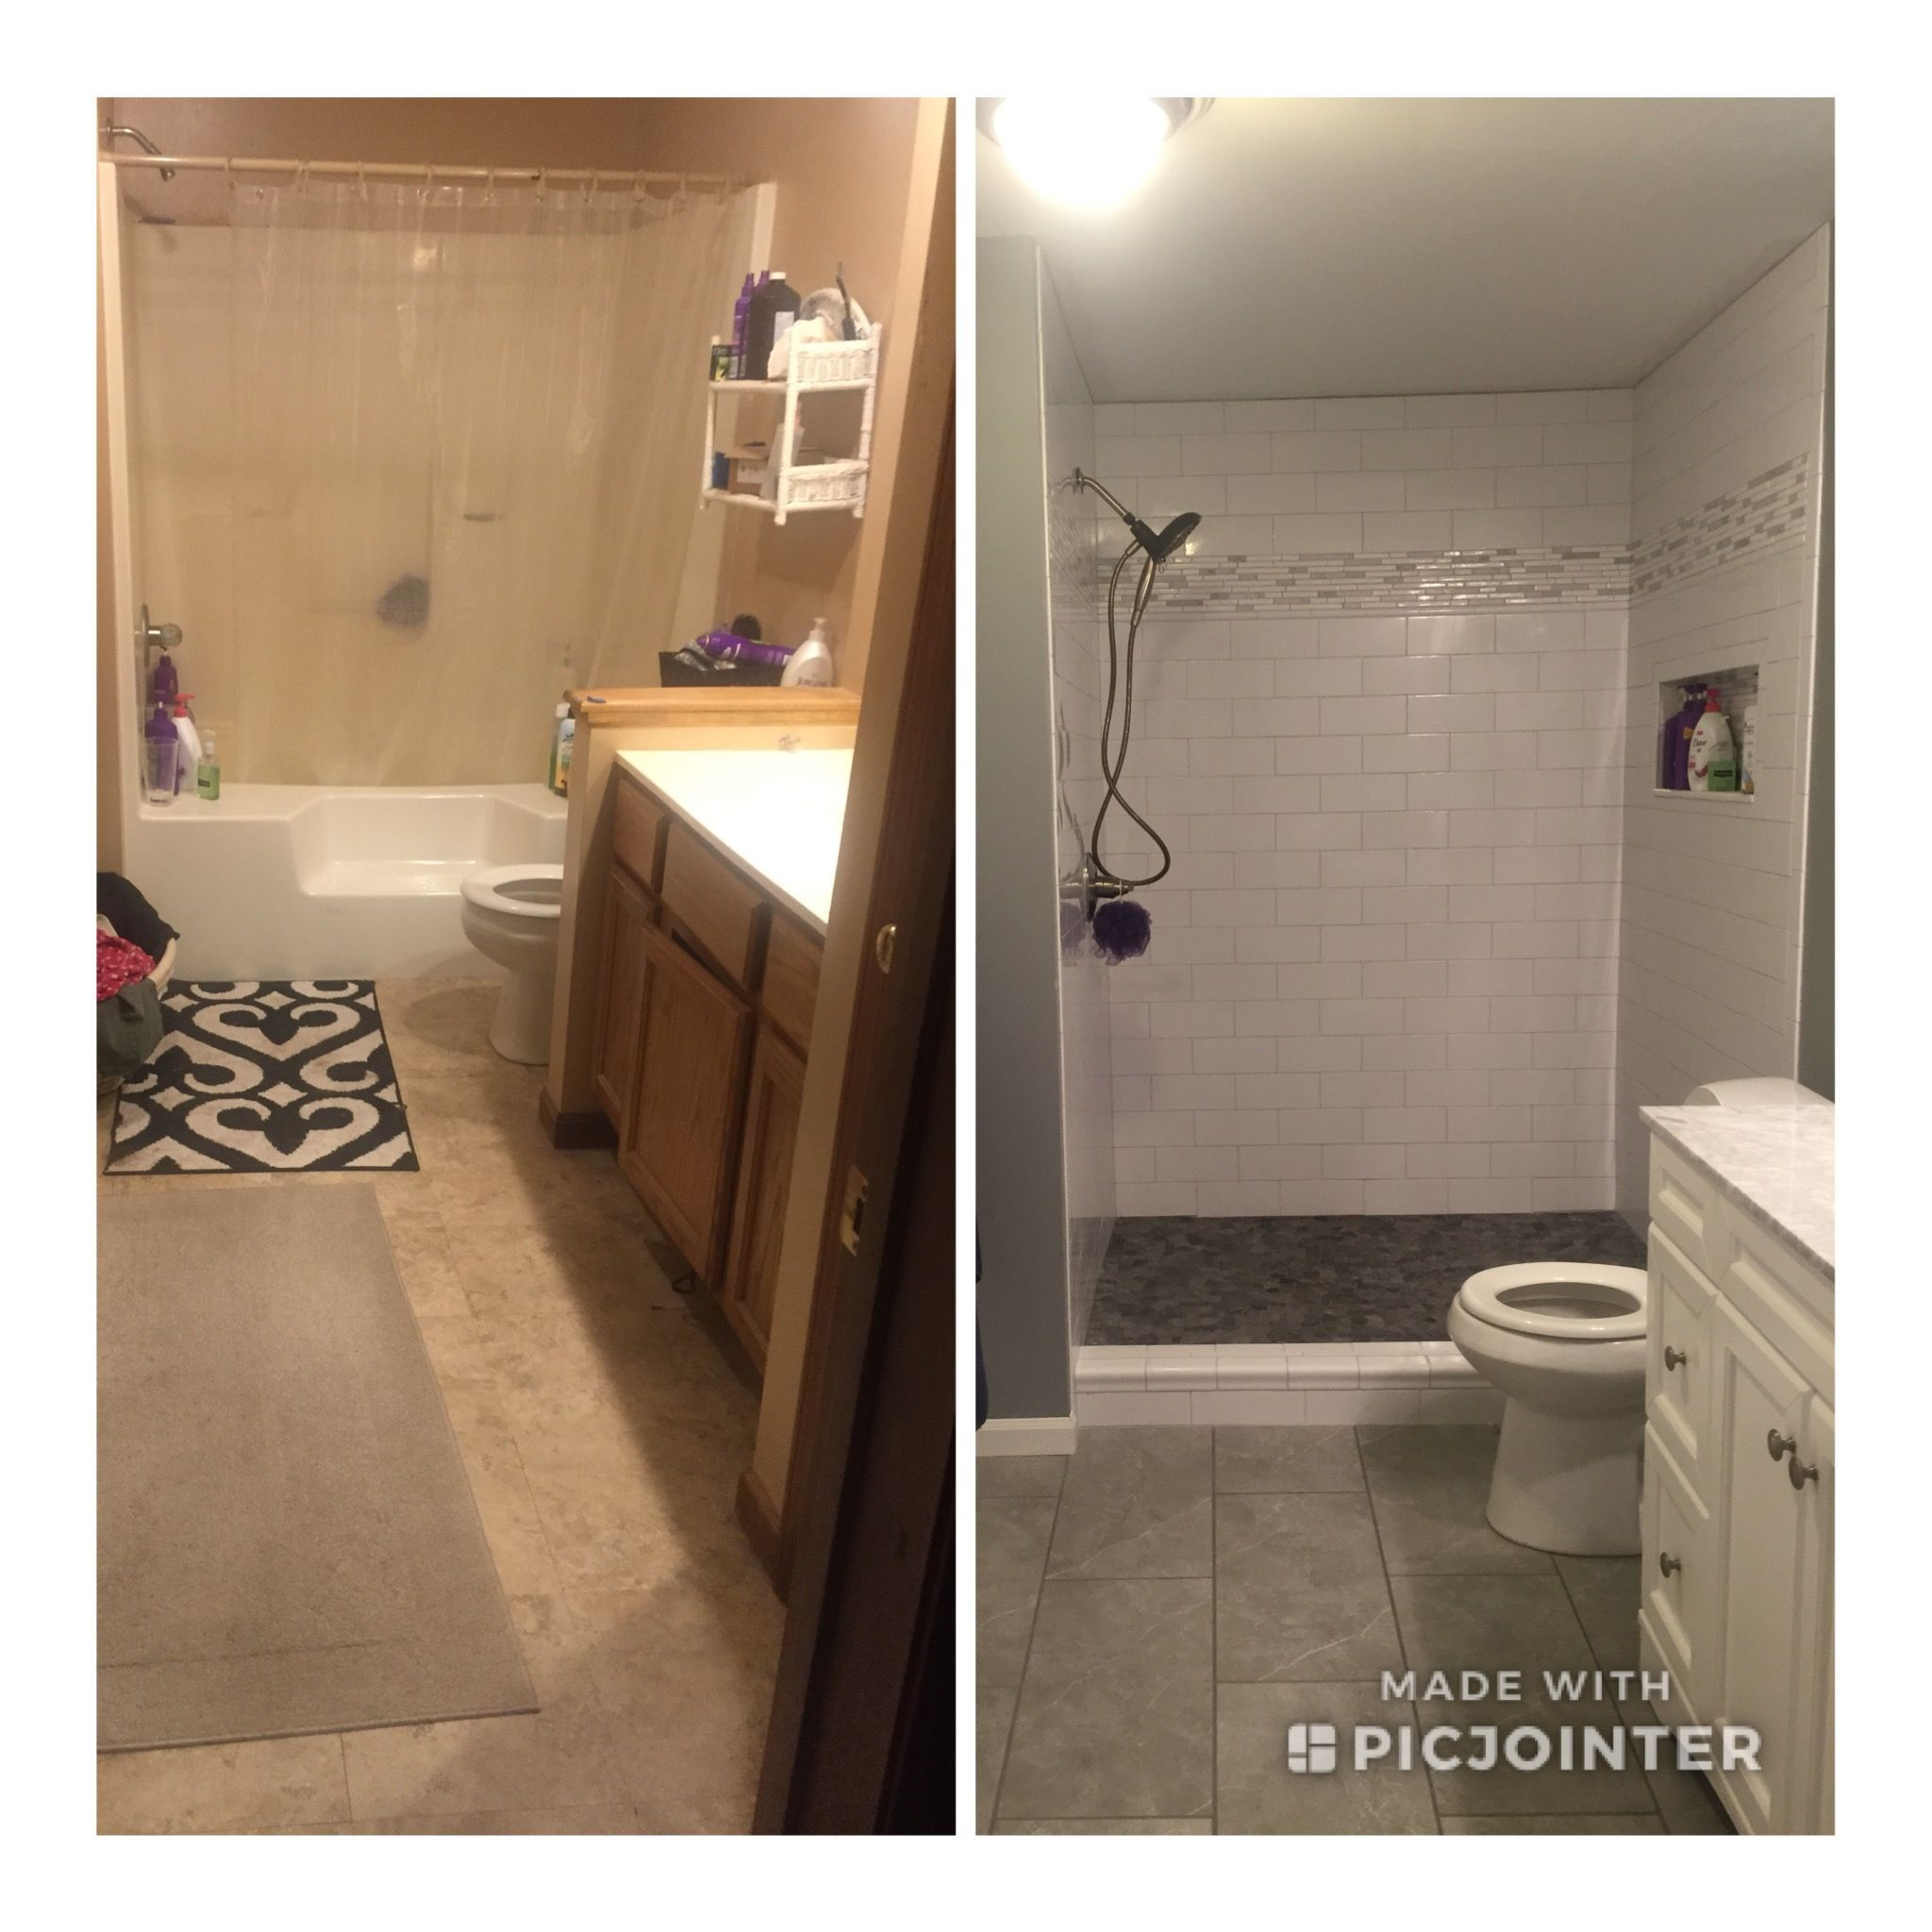 My Before And After Removed Garden Tub To Make Large Shower Replaced Single Si In 2020 Tub To Shower Conversion Tub To Shower Remodel Tub Remodel